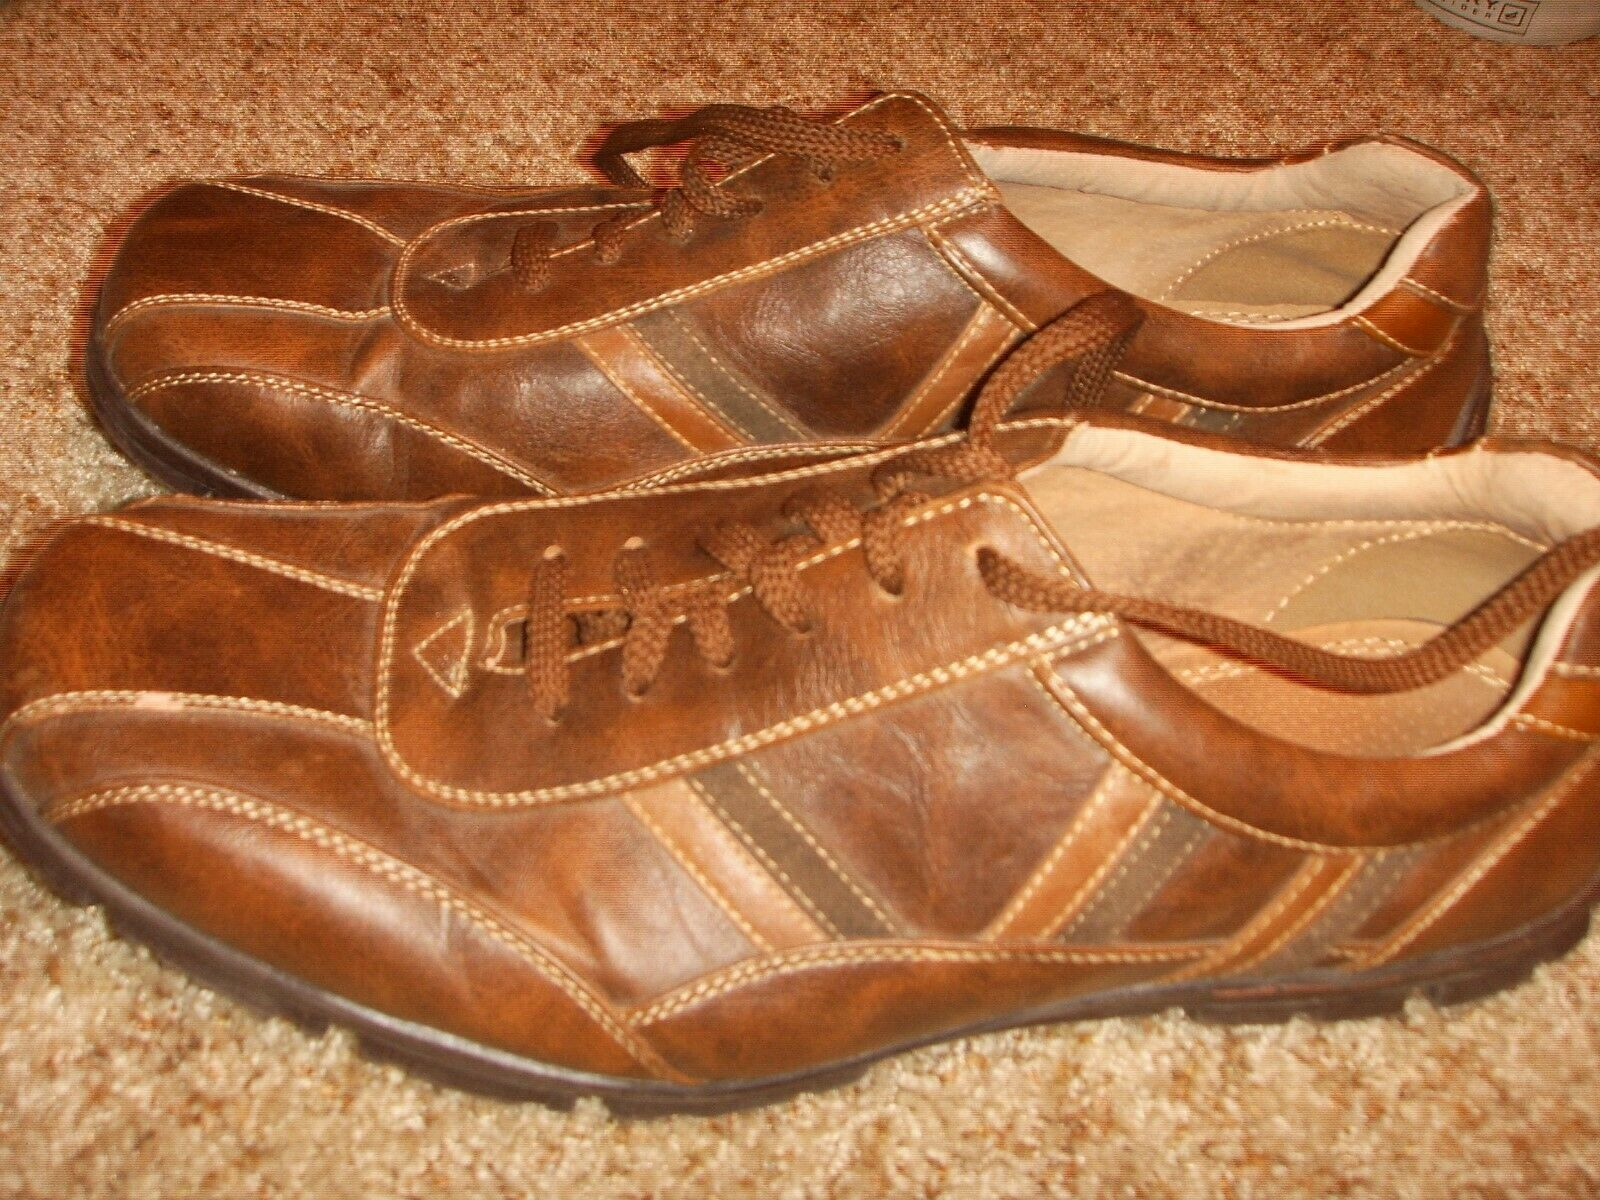 Bass Travis Brown Leather Athletic Oxfords shoes Mens Size 11M